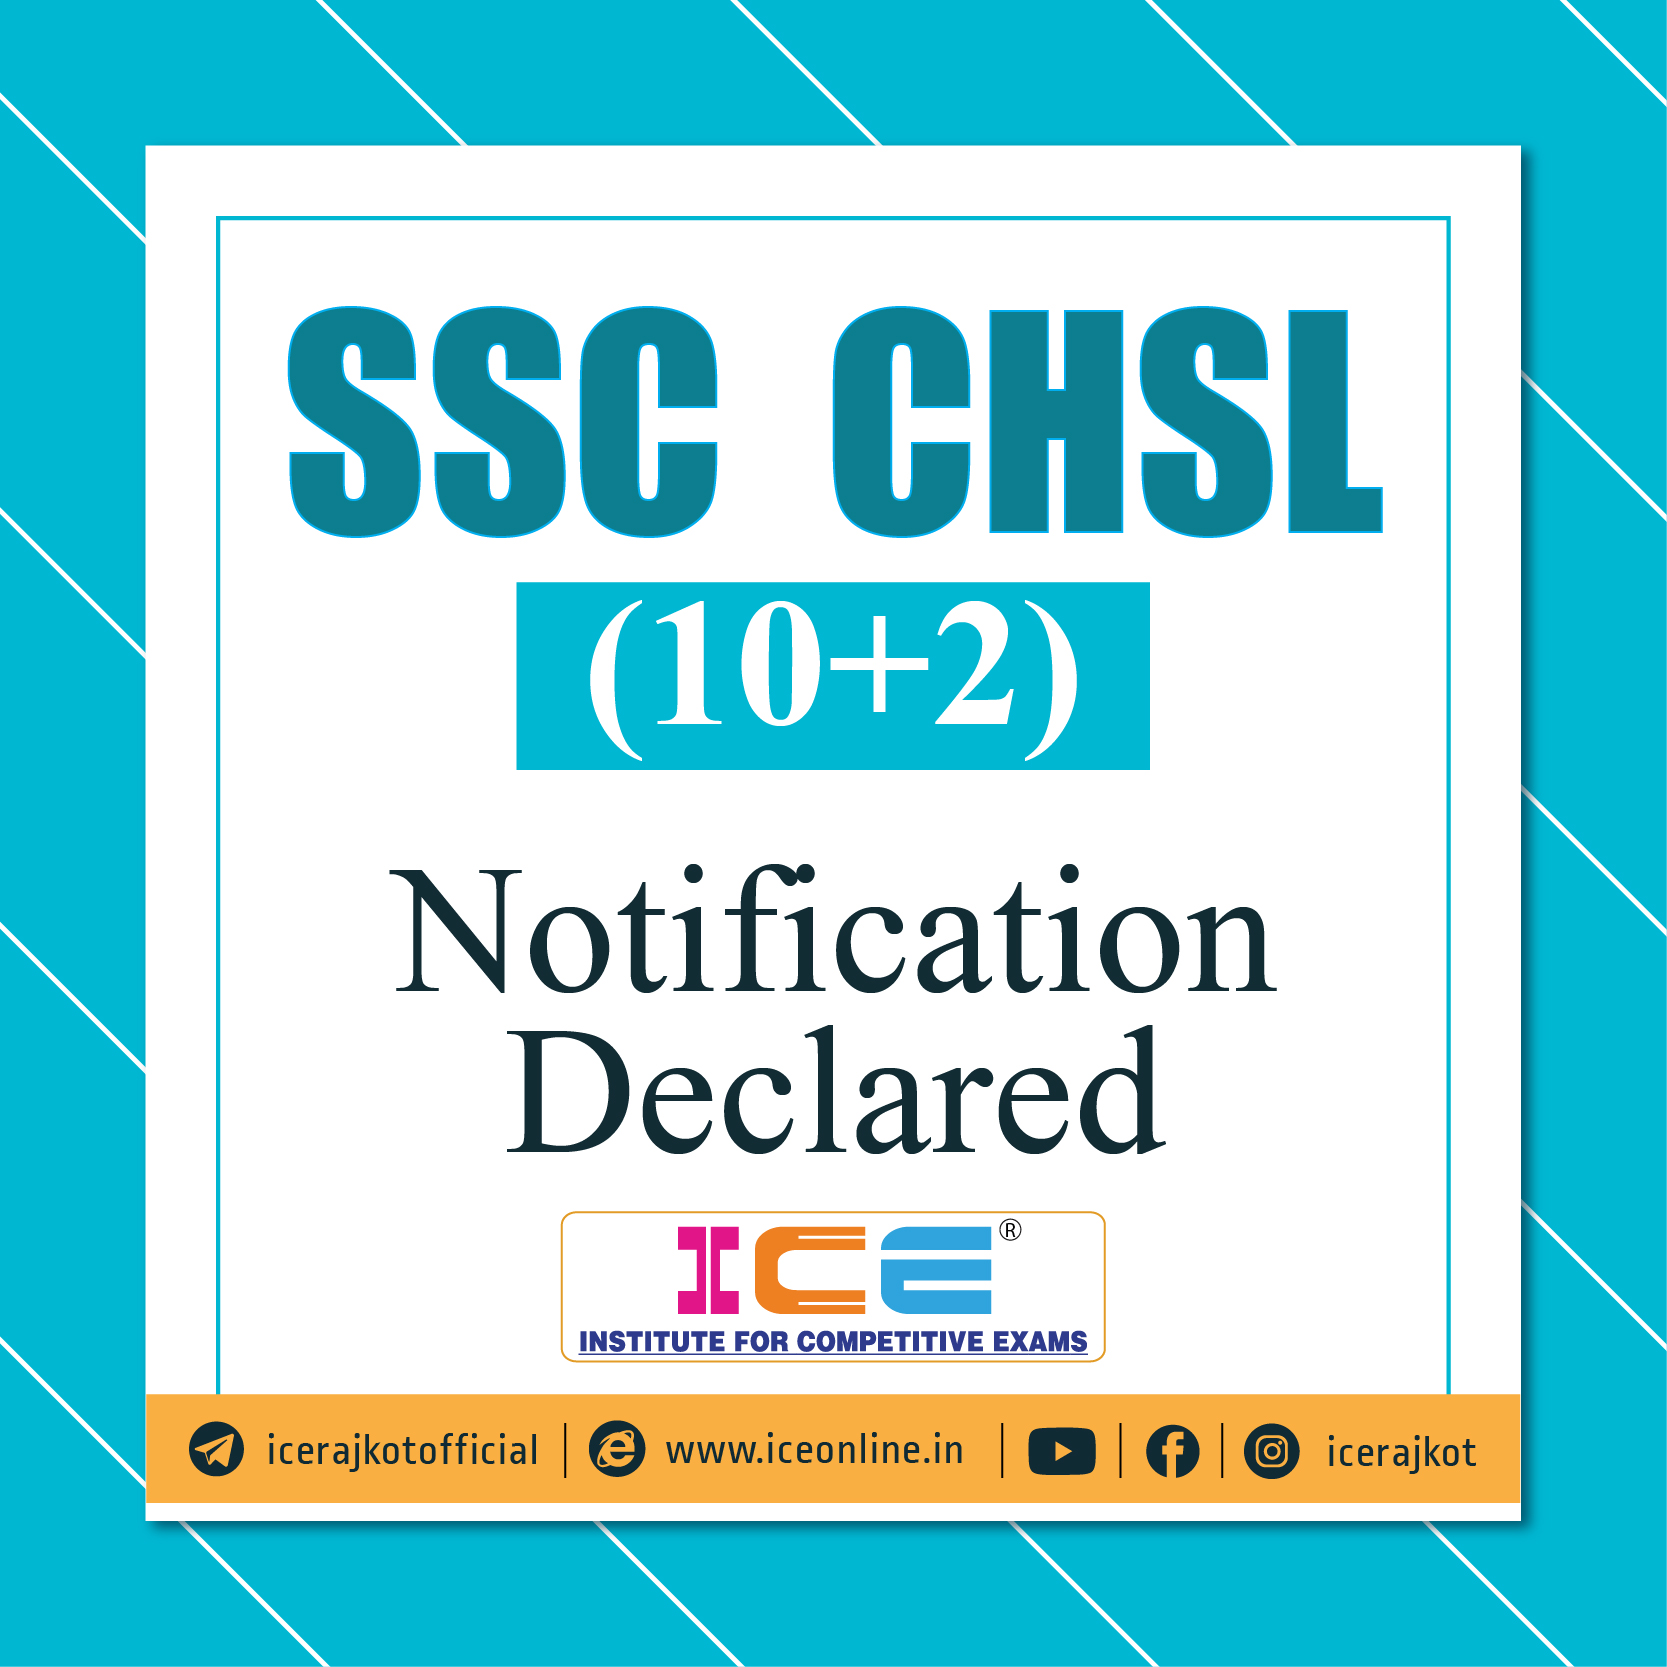 SSC CHSL (10+2) Notification Declared